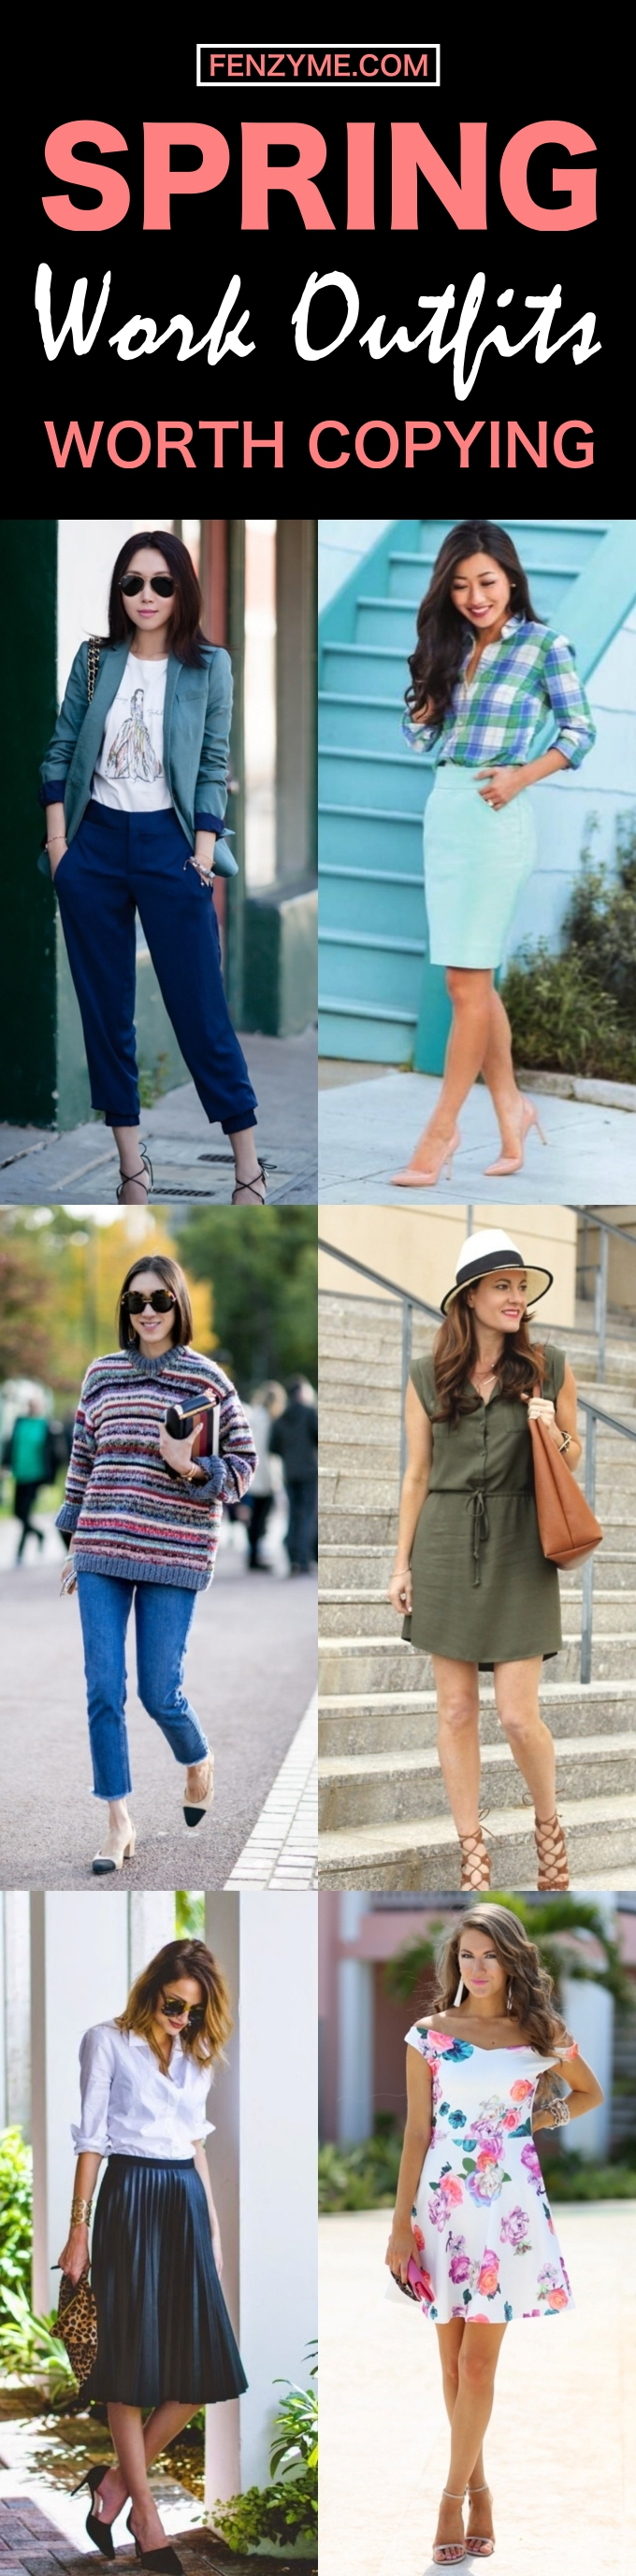 Spring Work Outfits Worth Copying